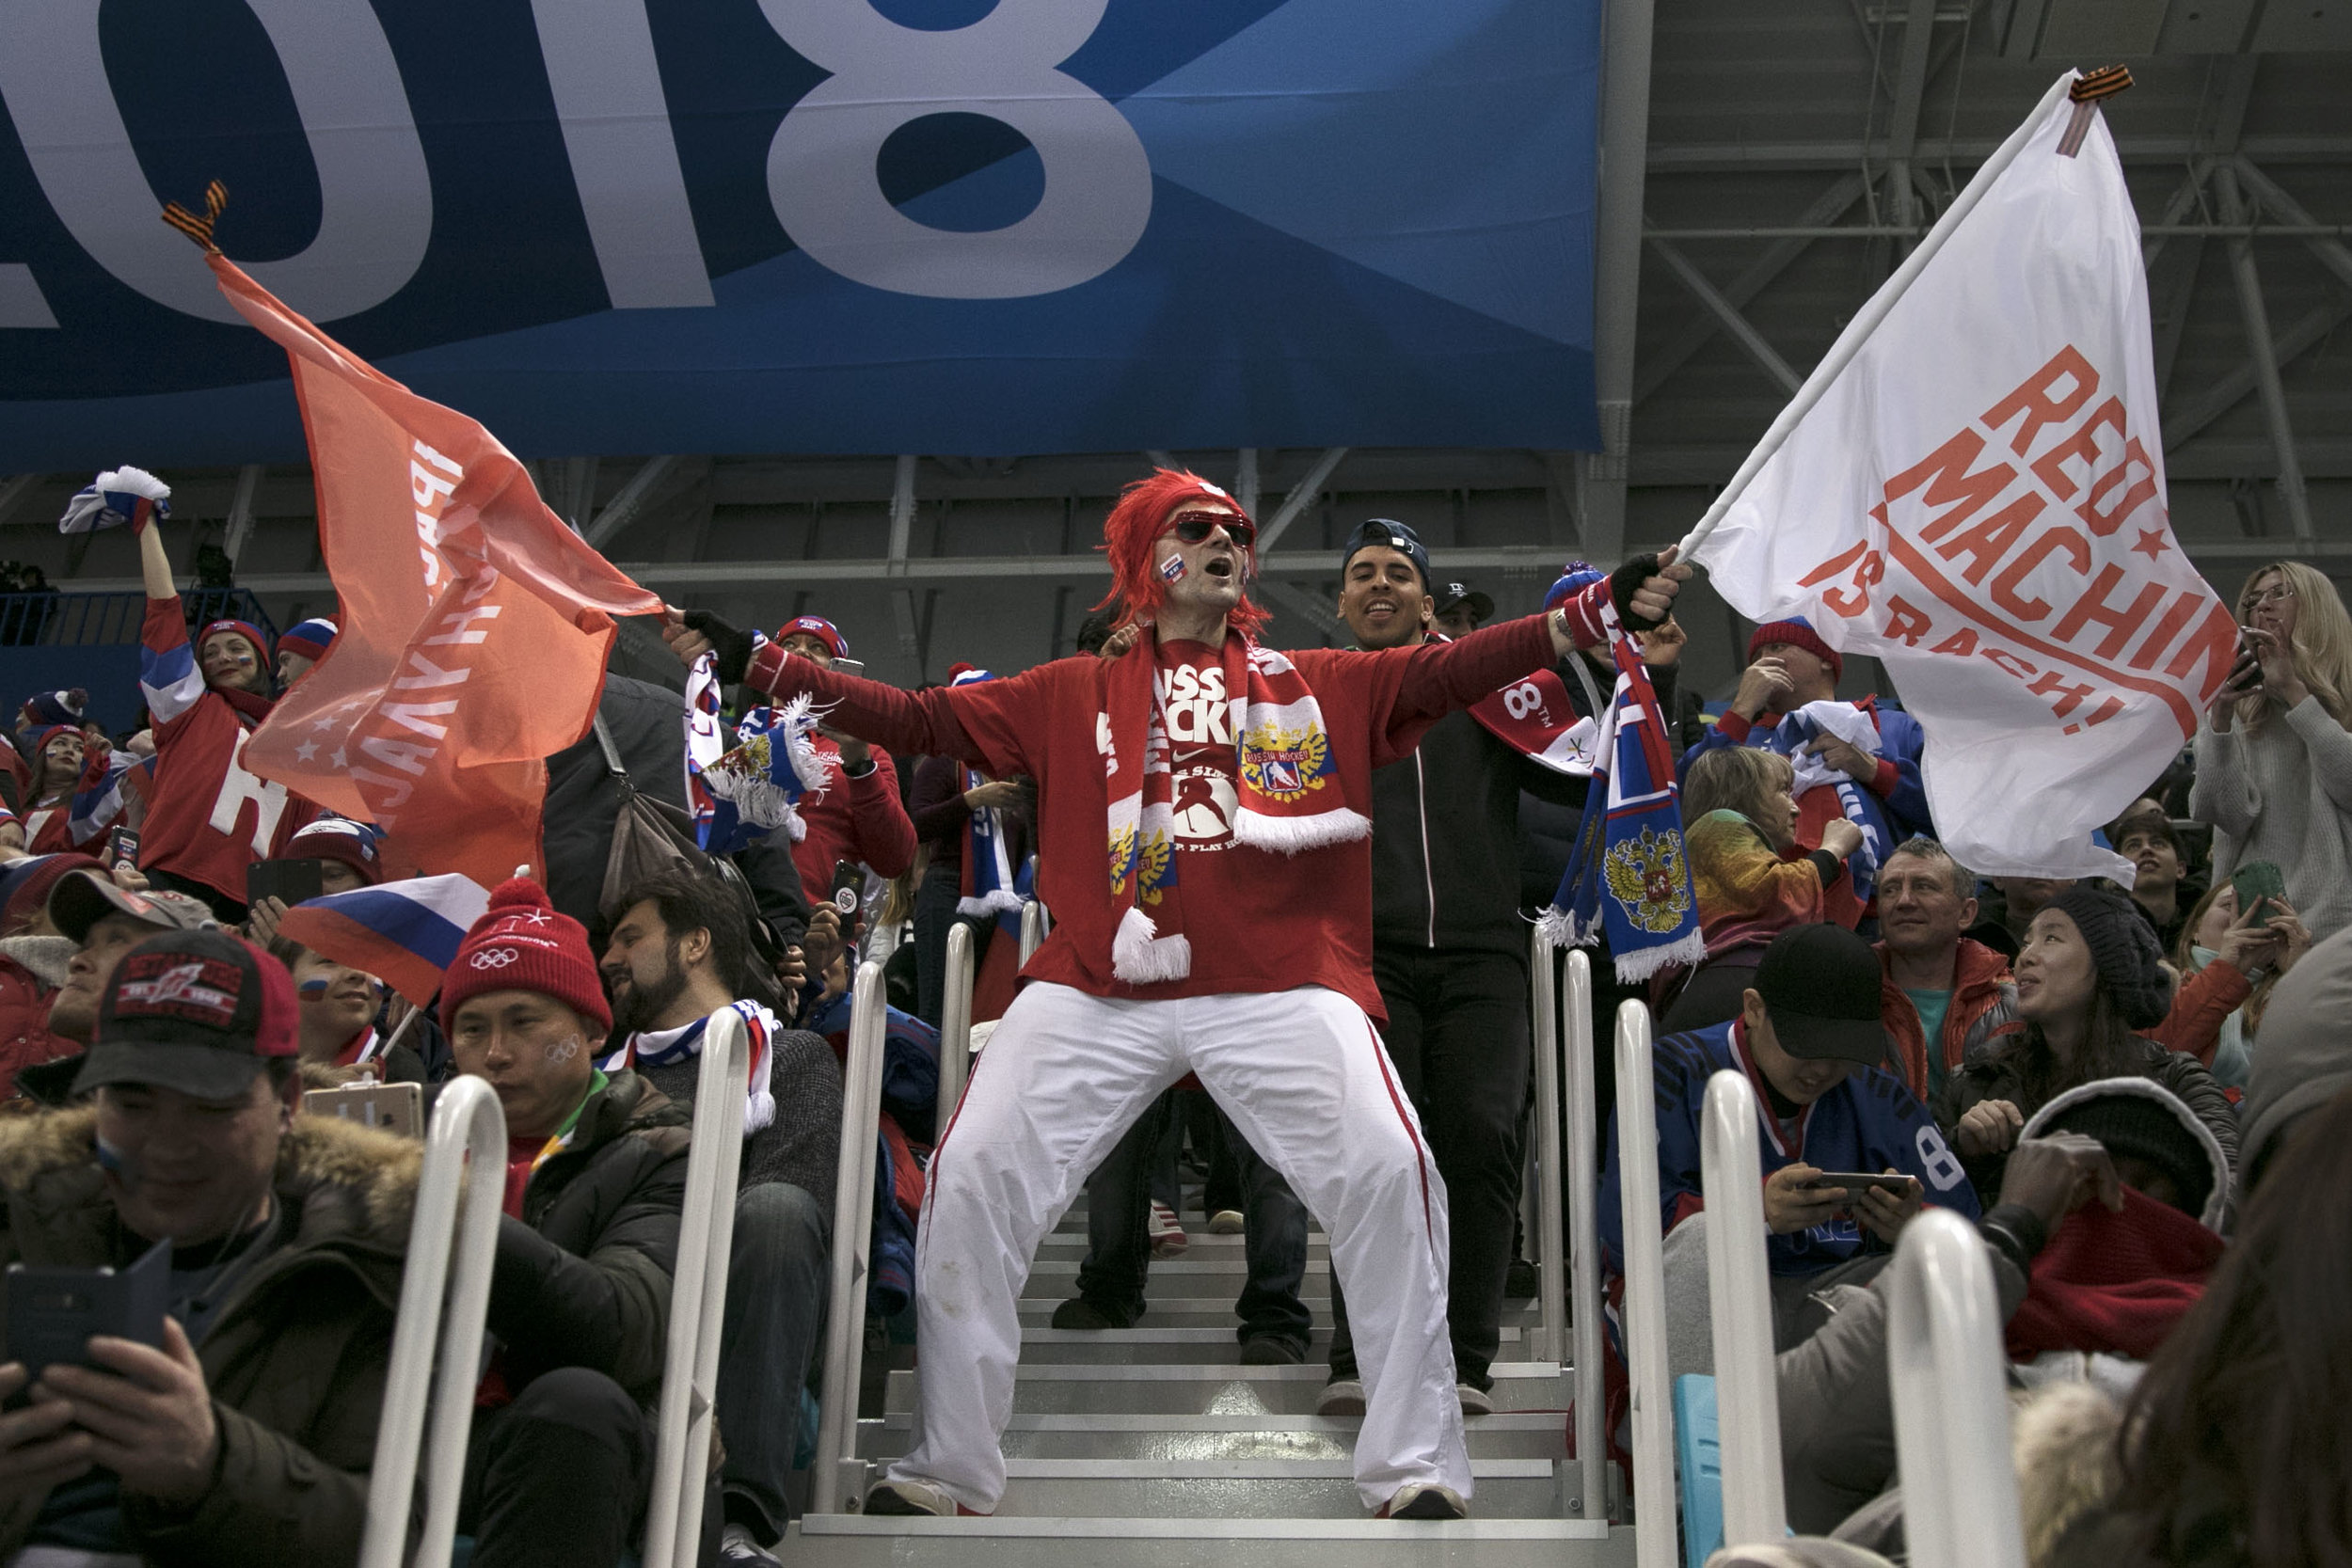 Olympic Athlete's of Russia fans wildly cheer after after scoring in the second period against the U.S., Feb. 17, at Gangneung Hockey Centre. U.S. lost, 4-0 in a shut out against the Olympic Athlete's of Russia.